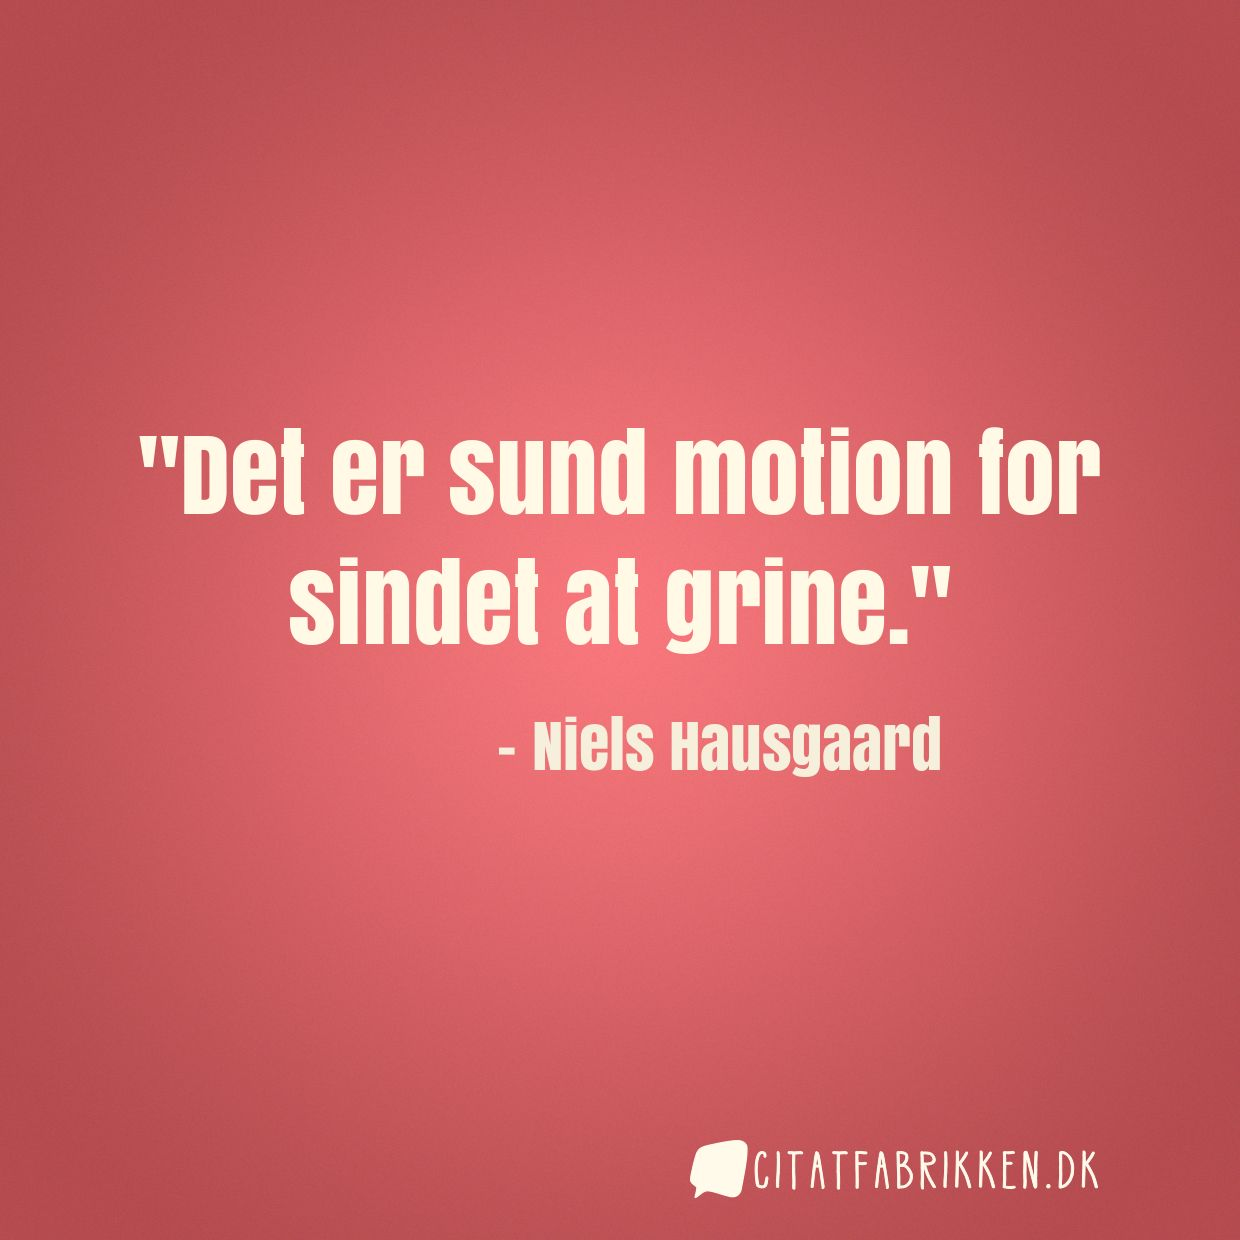 Det er sund motion for sindet at grine.